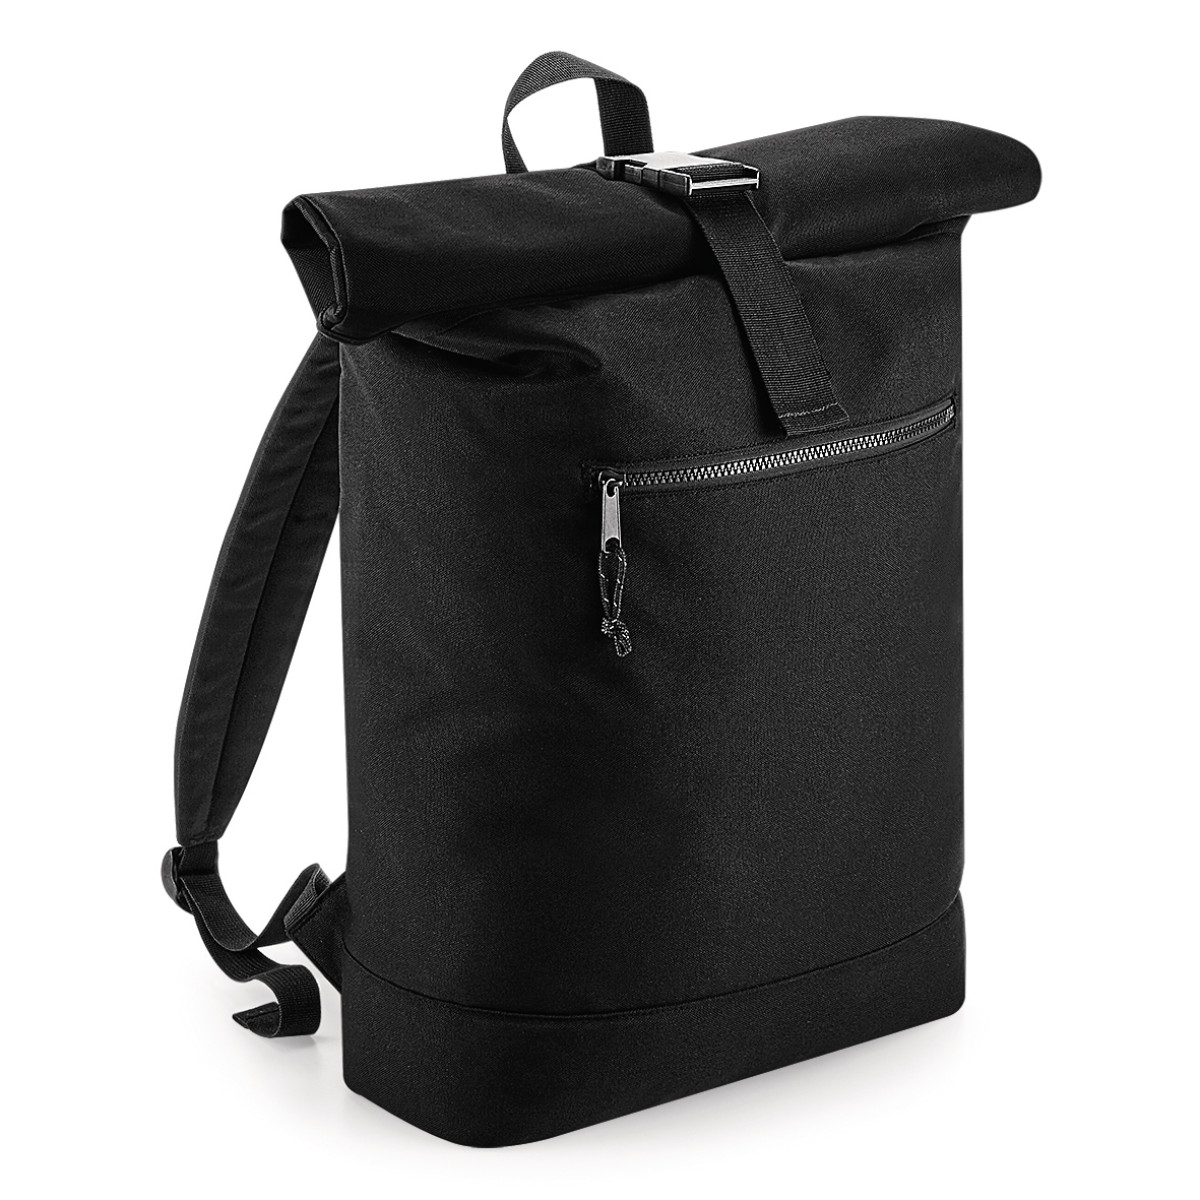 Bagbase Recycled Rolltop Backpack